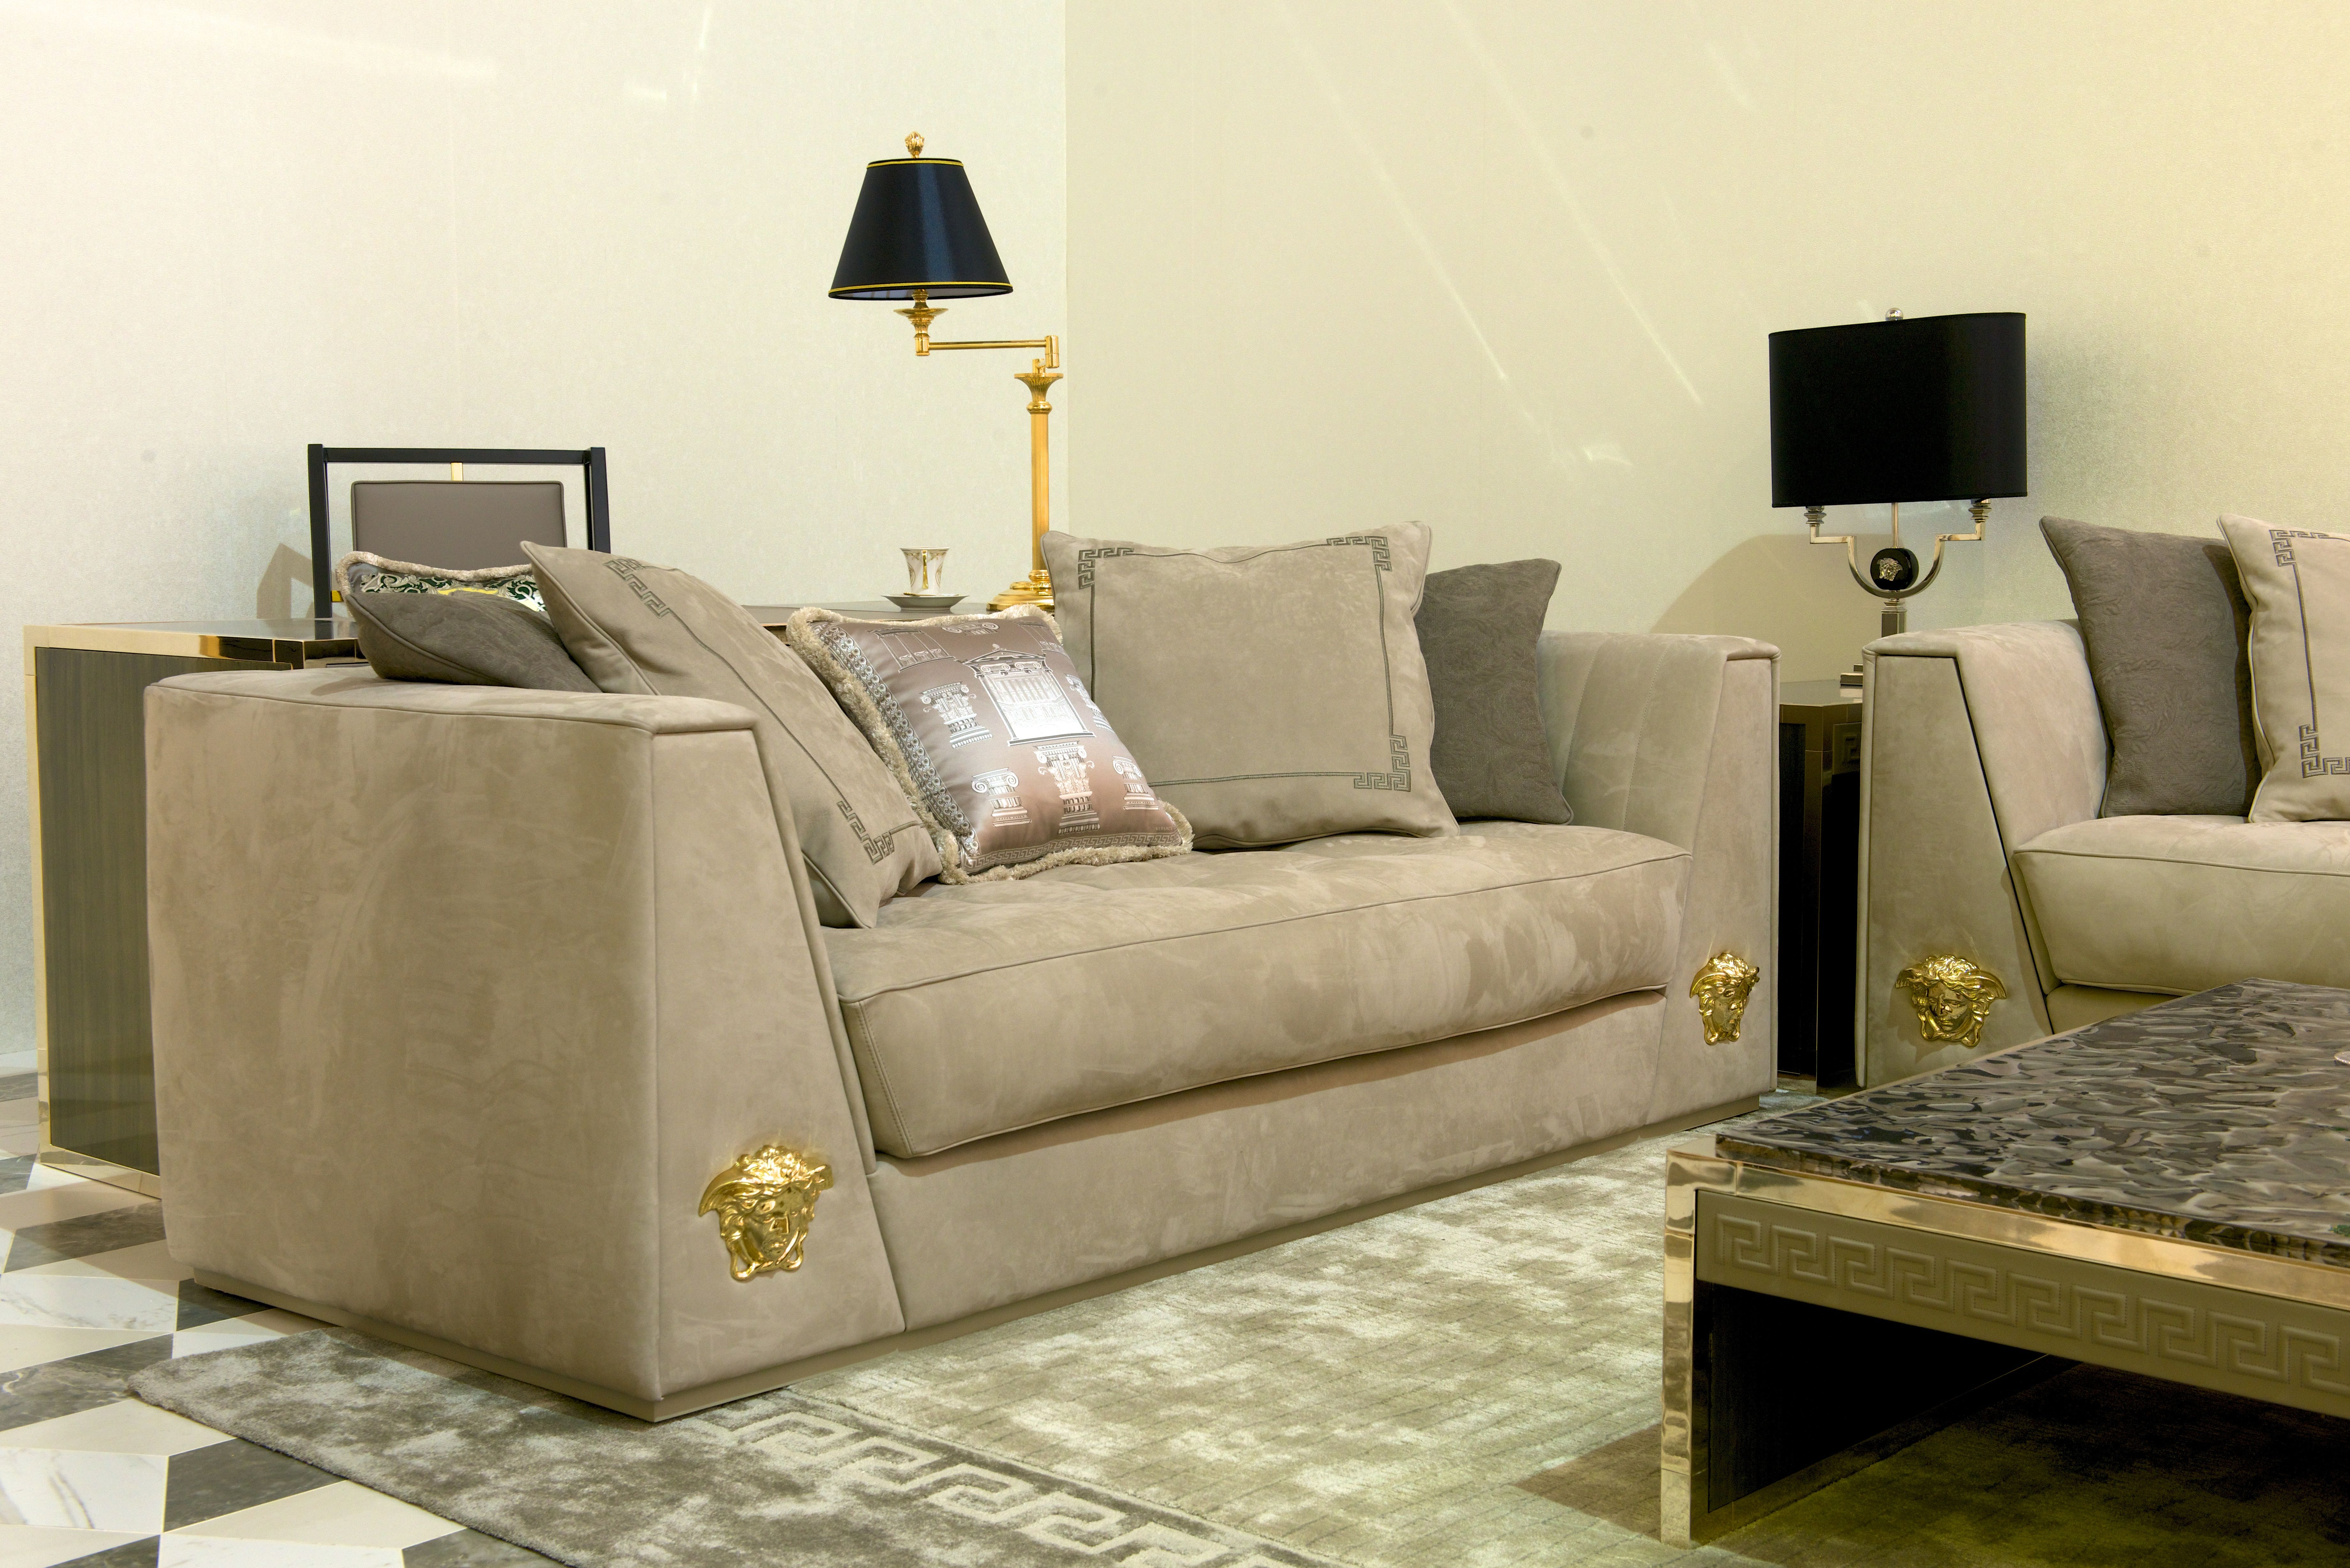 Mobili Versace ~ The new luxury via gesù sofa versacehome versace home